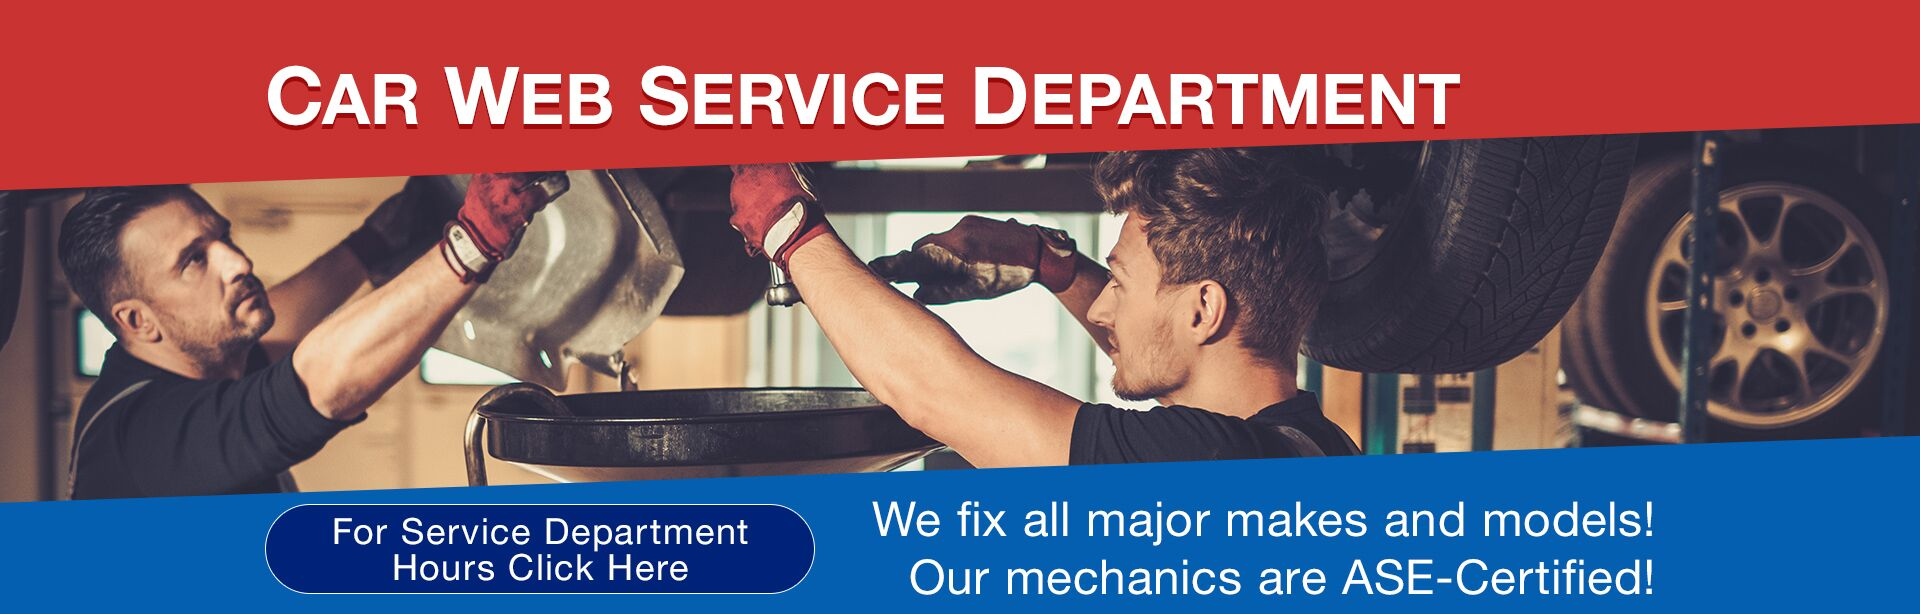 Service Department Hours